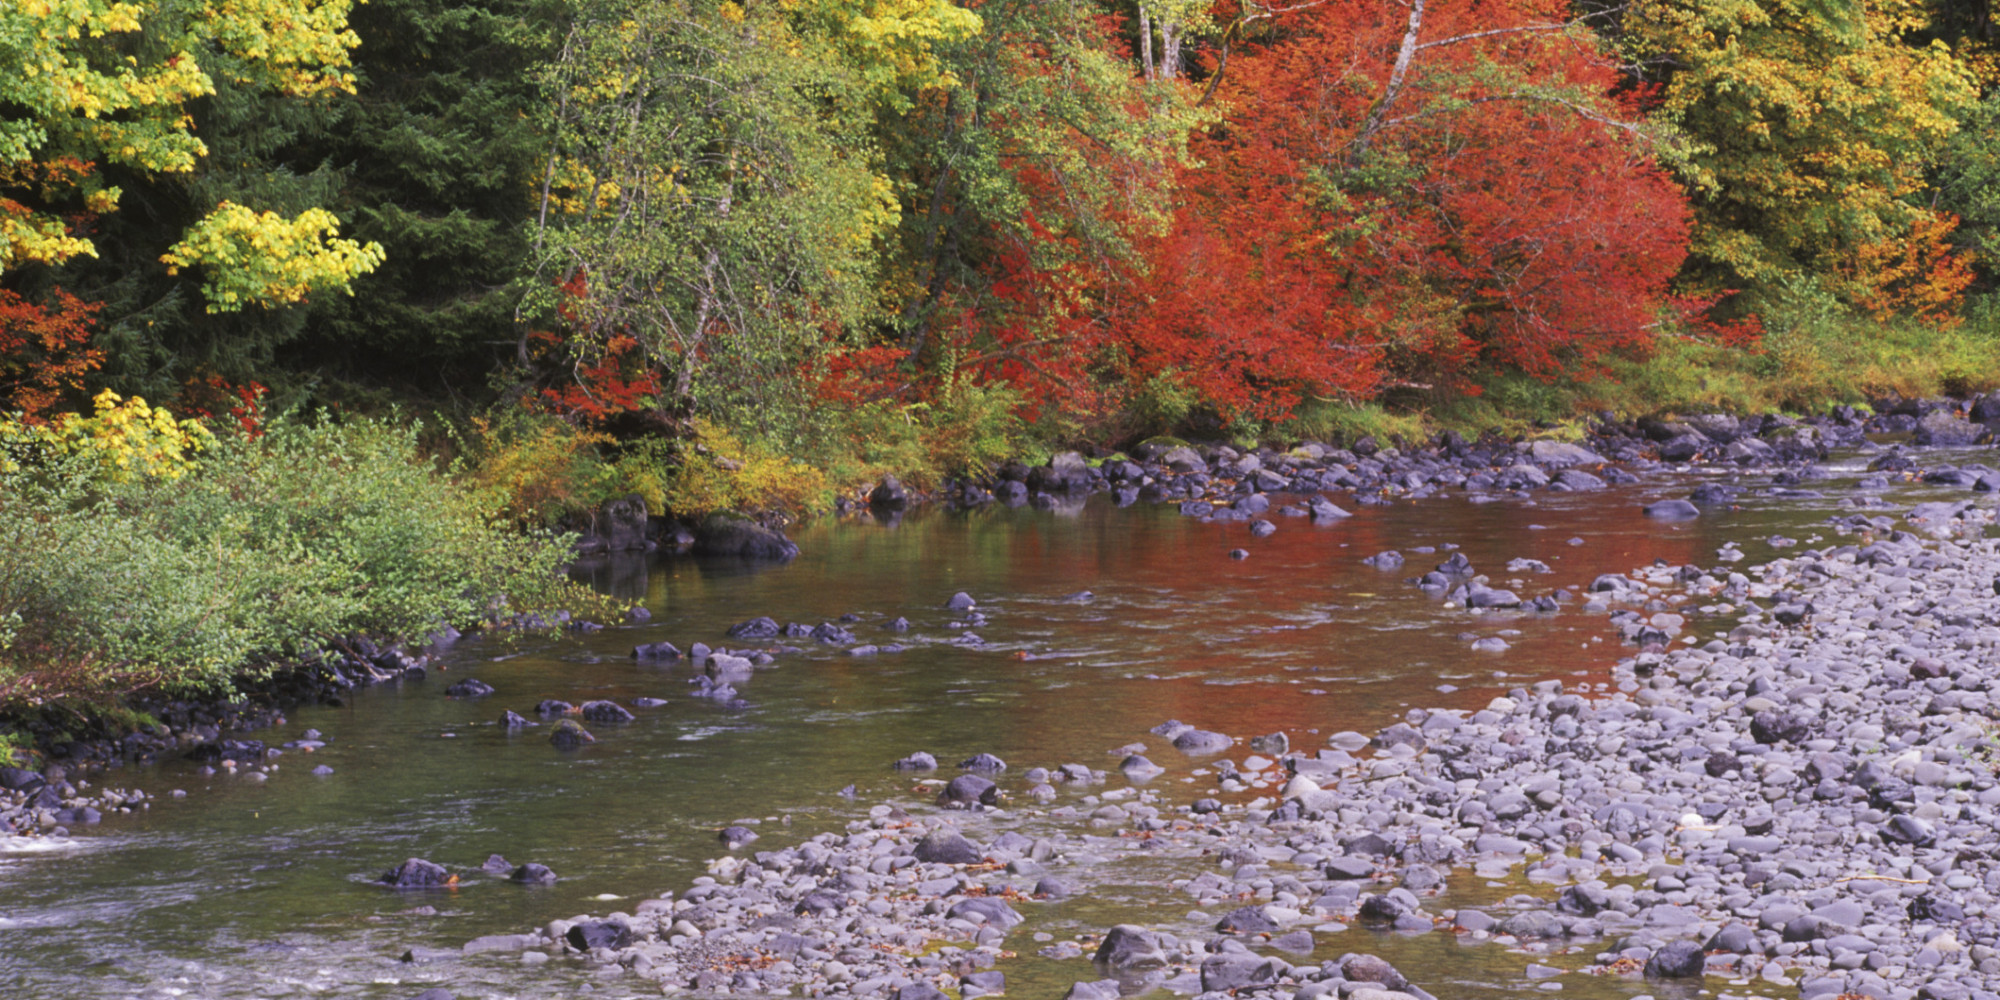 Man Faces Environmental Charges For Trying To Move River